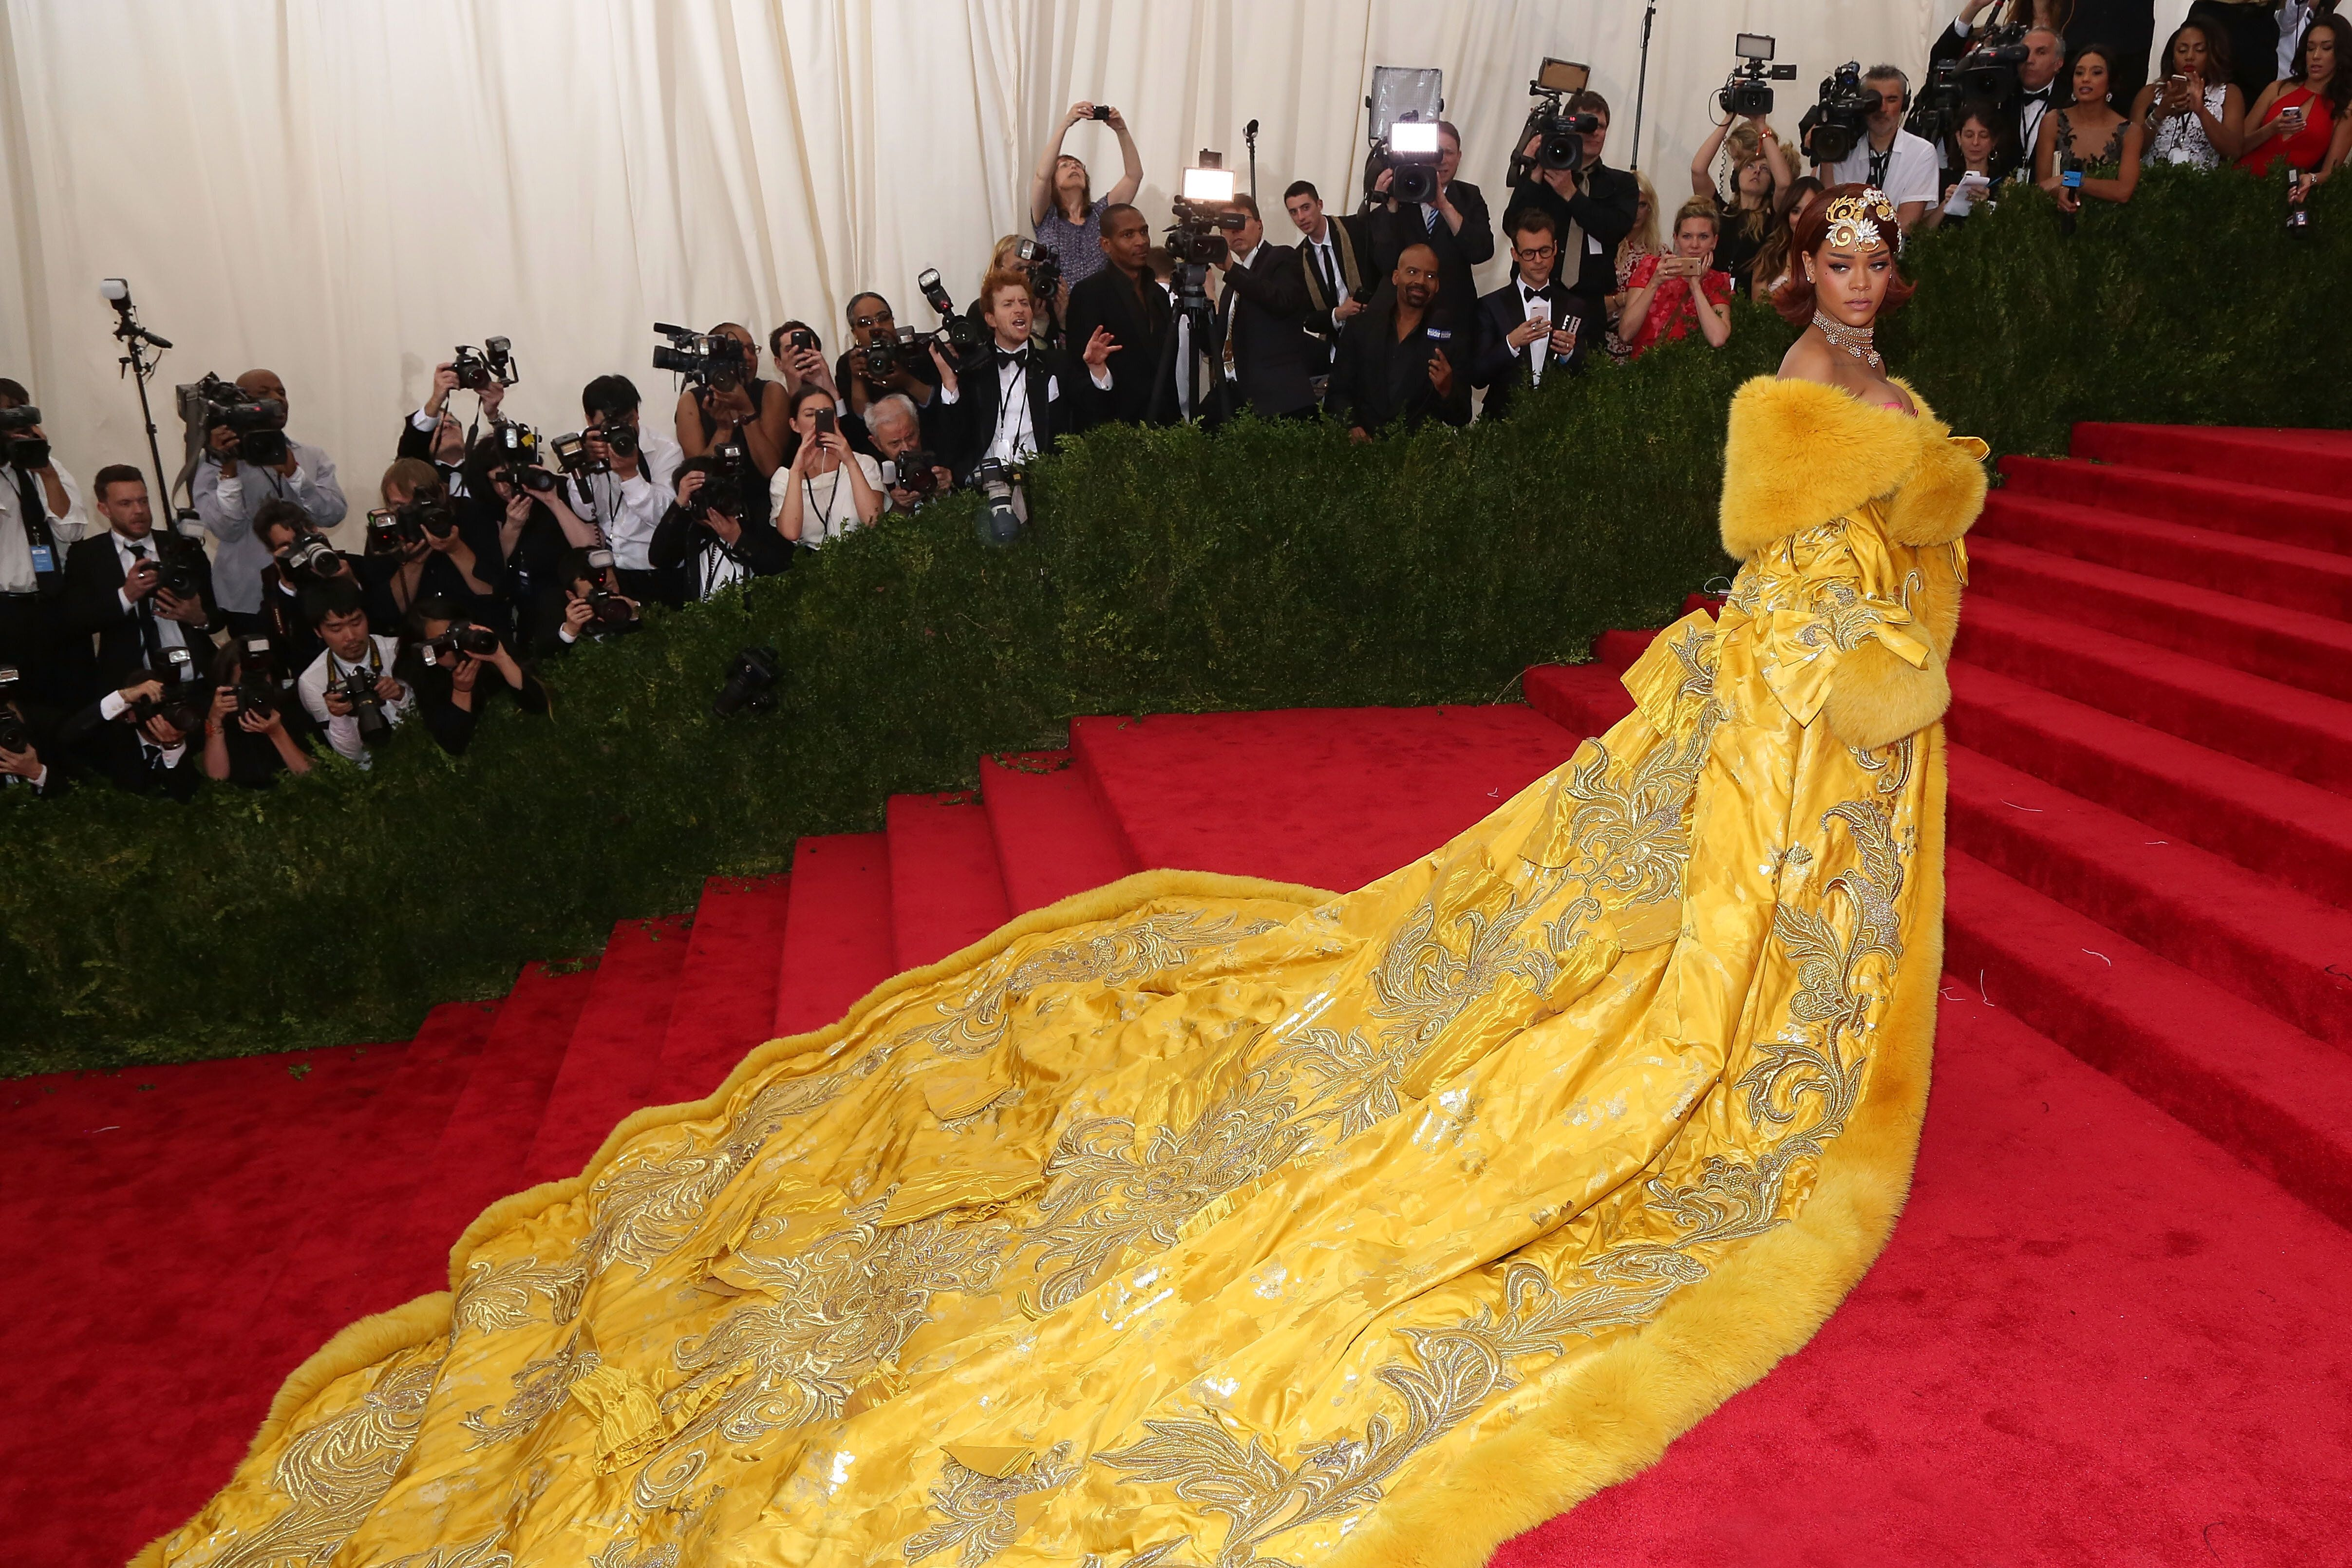 Rihanna Thought She Looked Like A 'Clown' In That Iconic Yellow Met Gala Gown